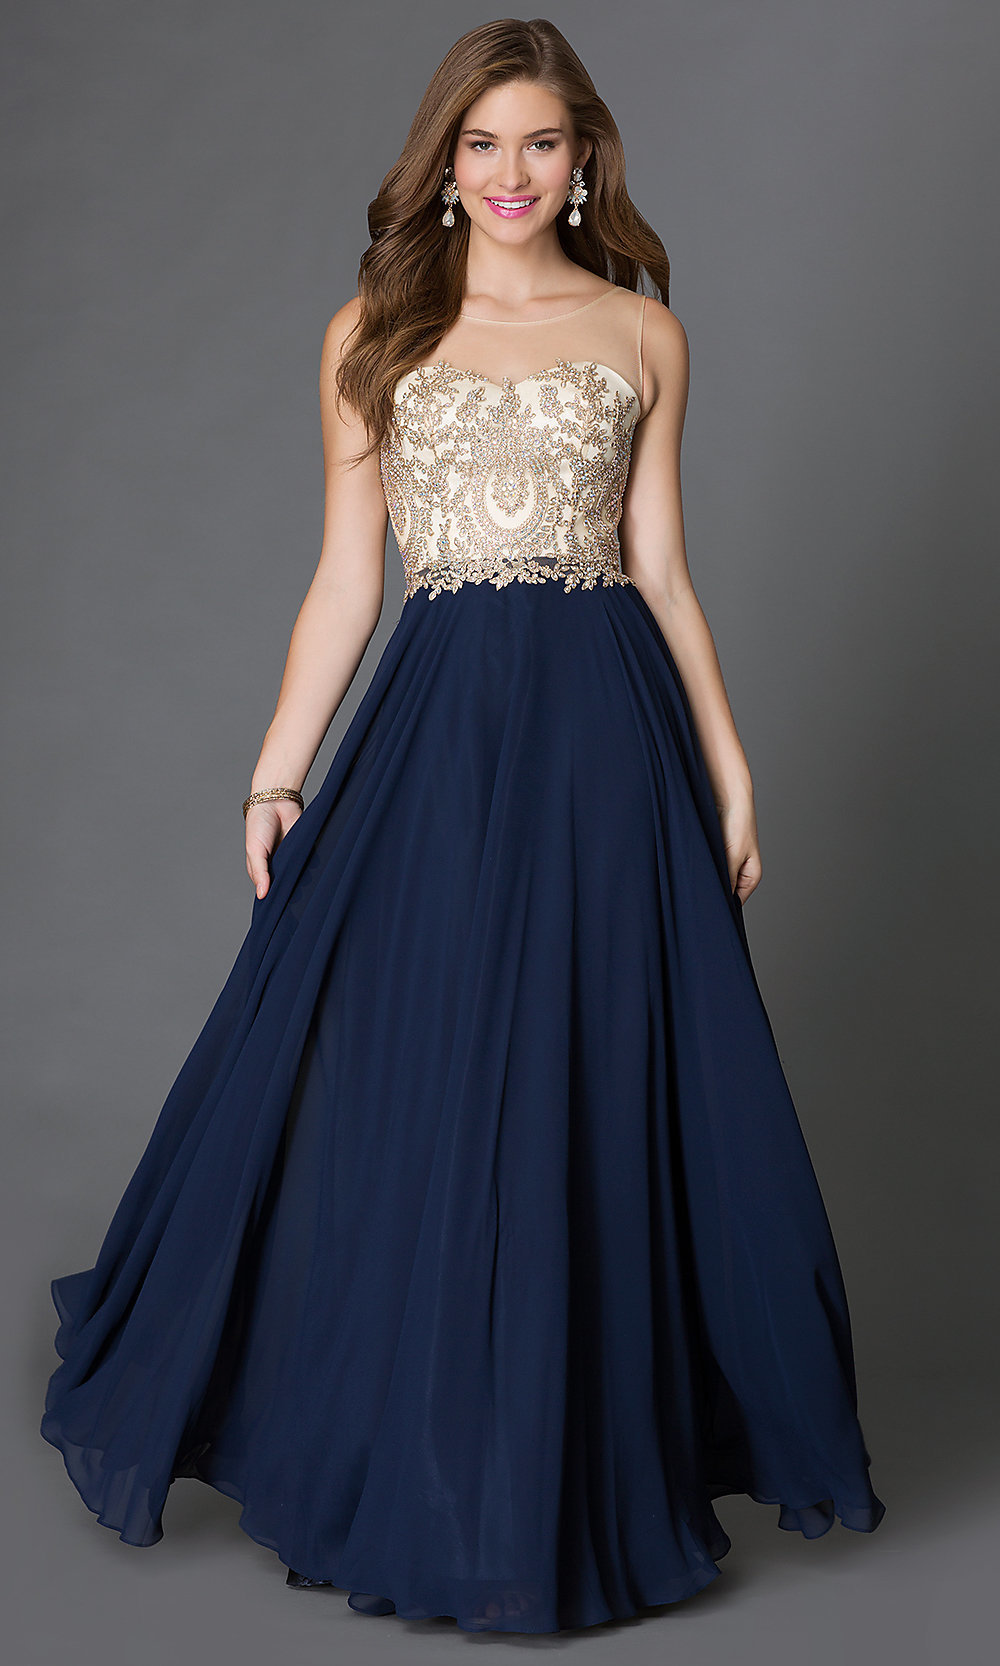 Long Sleeveless Jeweled Lace Prom Dress - PromGirl